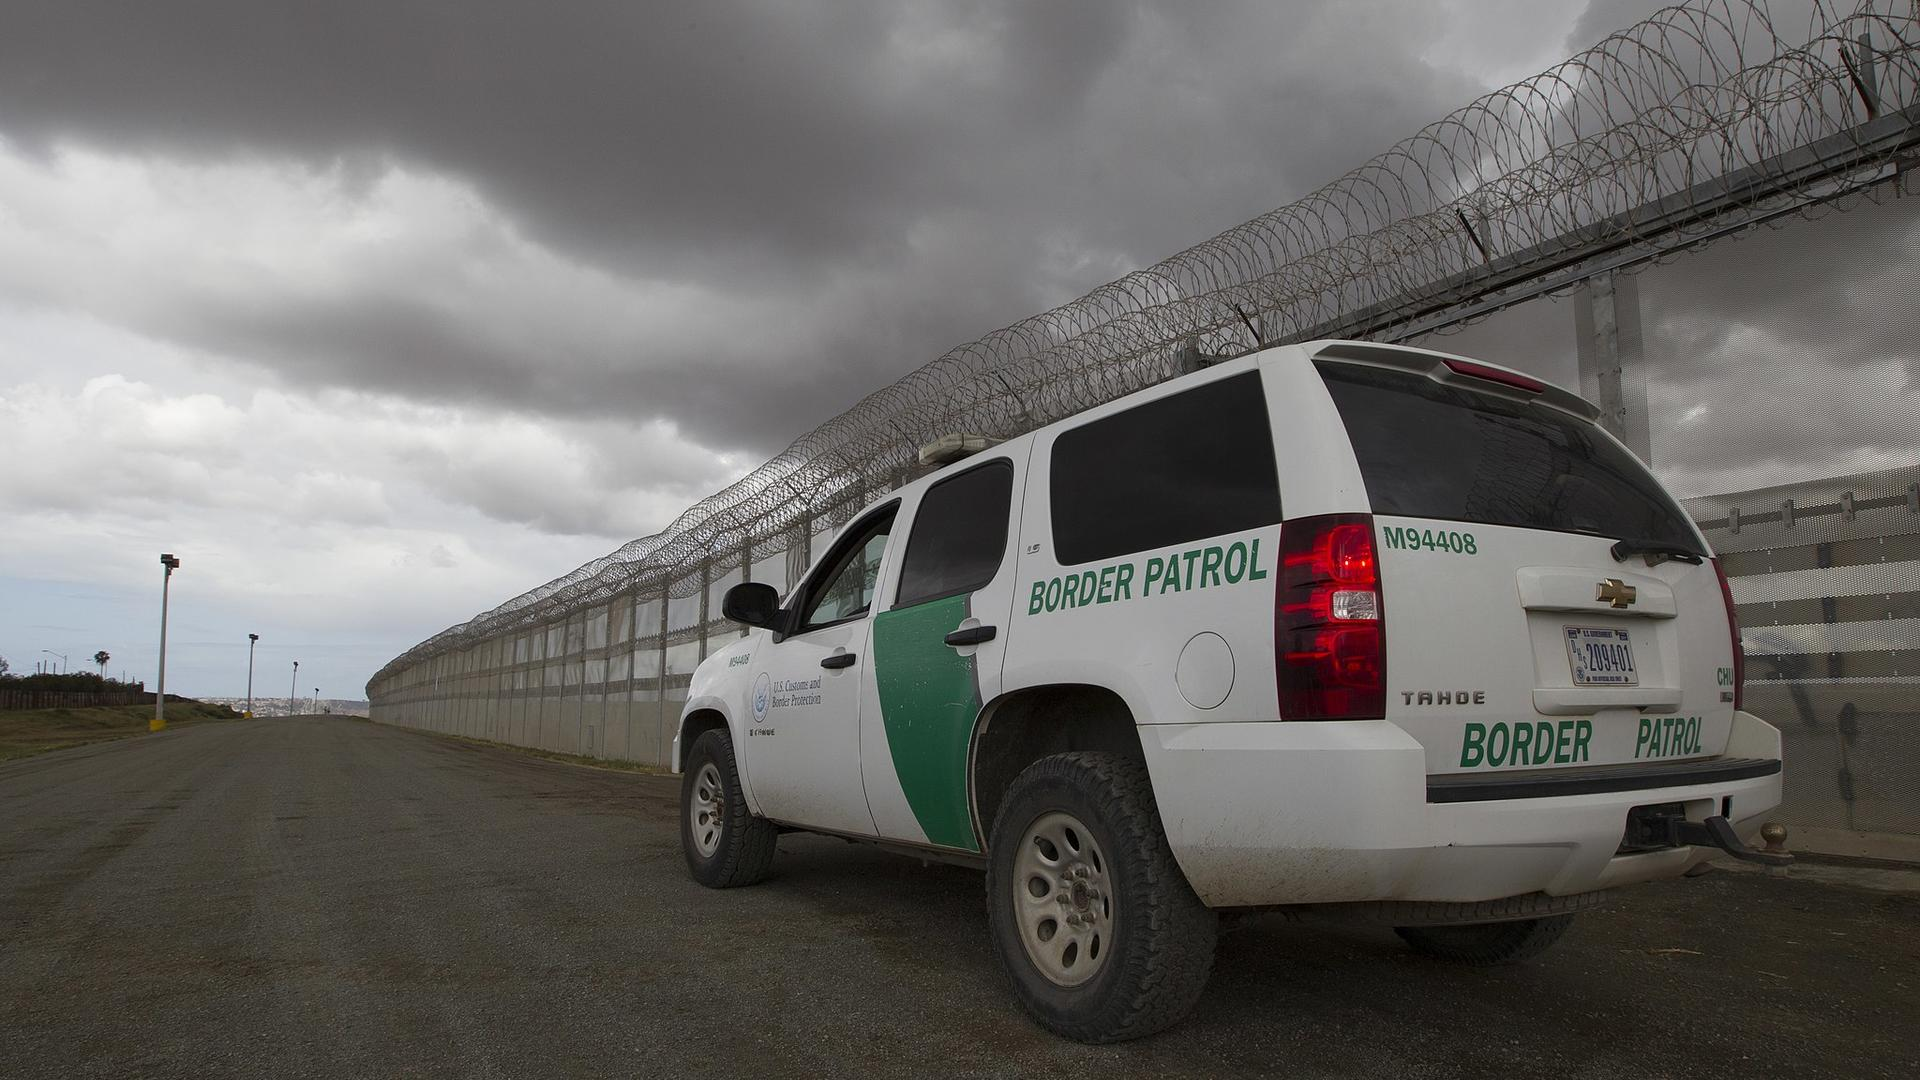 U.S. Border Patrol vehicle at a border fence near San Diego